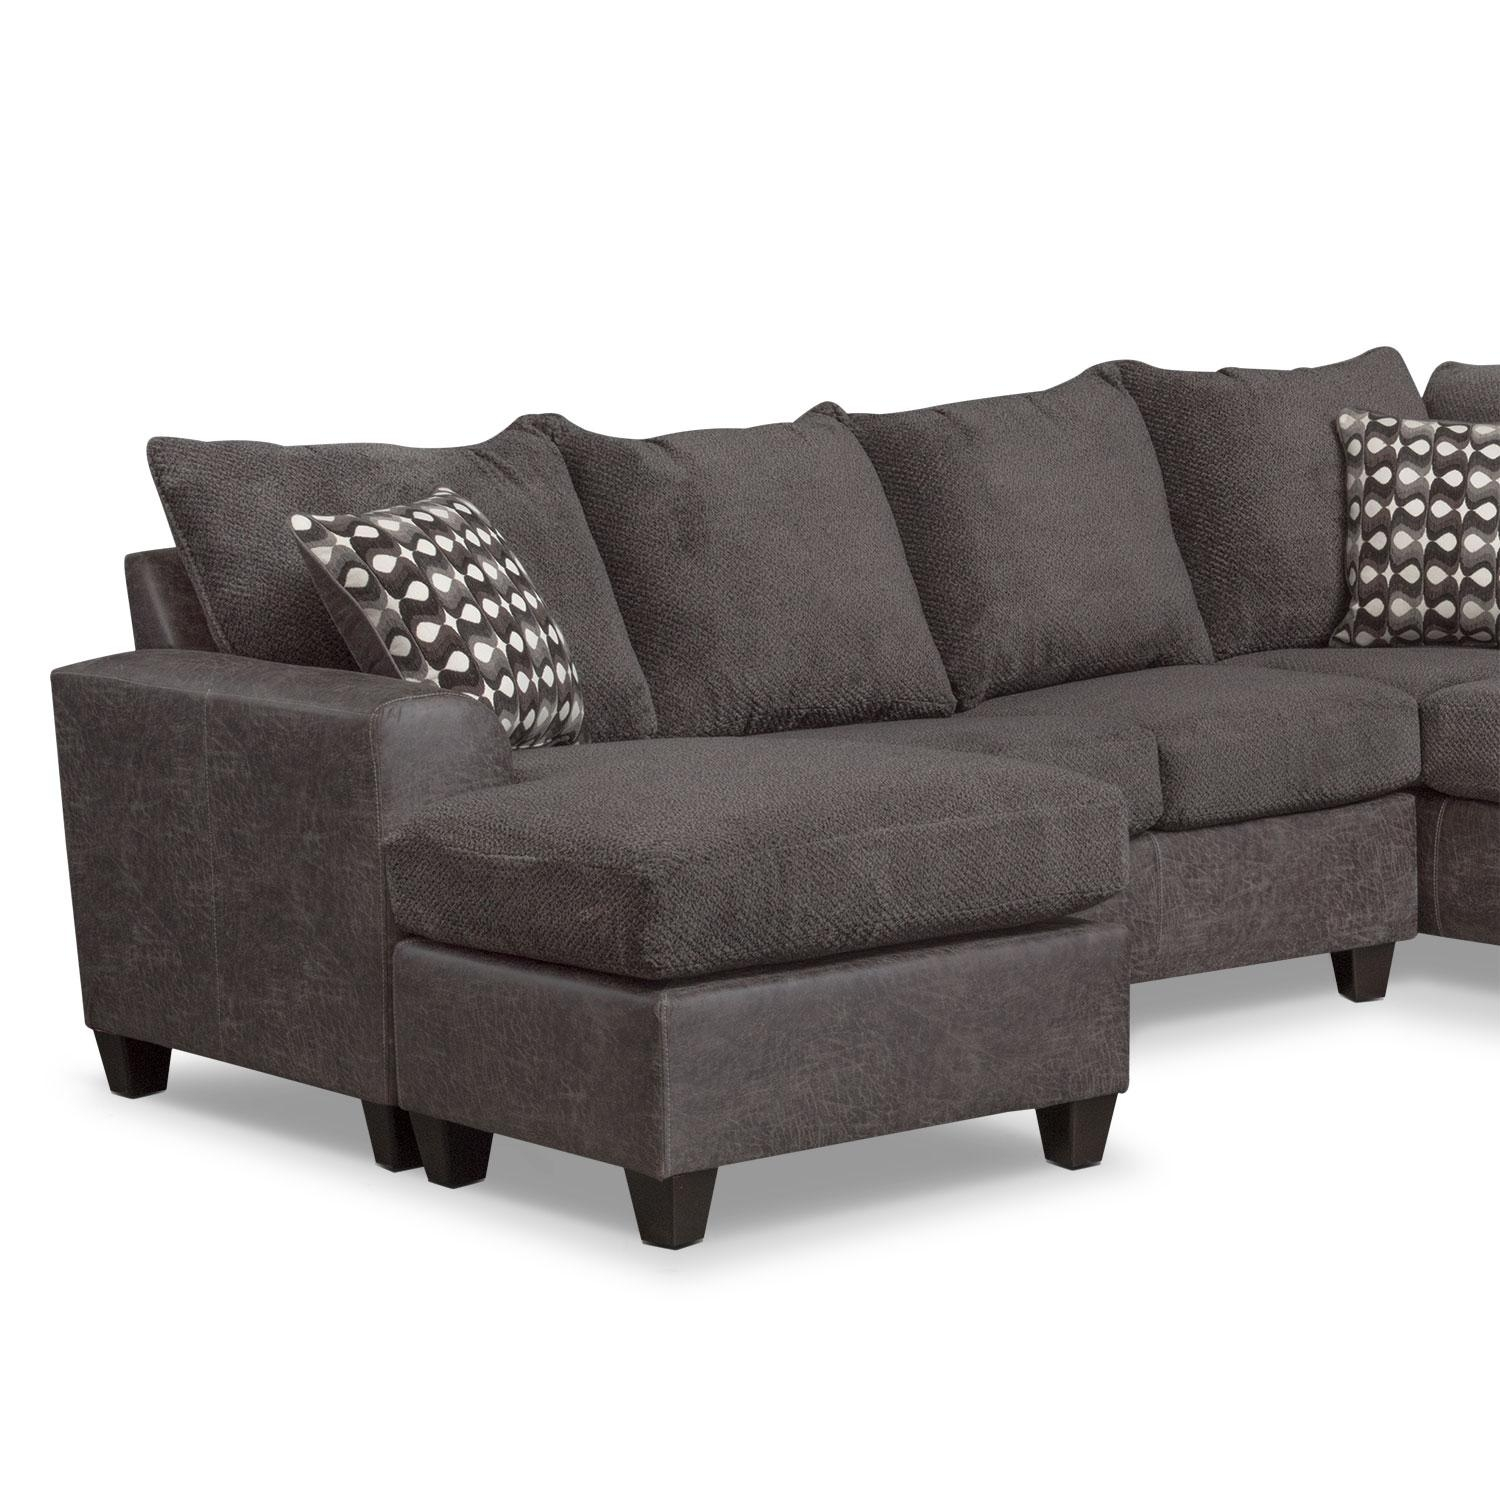 Brando 3 Piece Sectional With Modular Chaise – Smoke | American With Regard To Serta Sectional (Image 8 of 20)